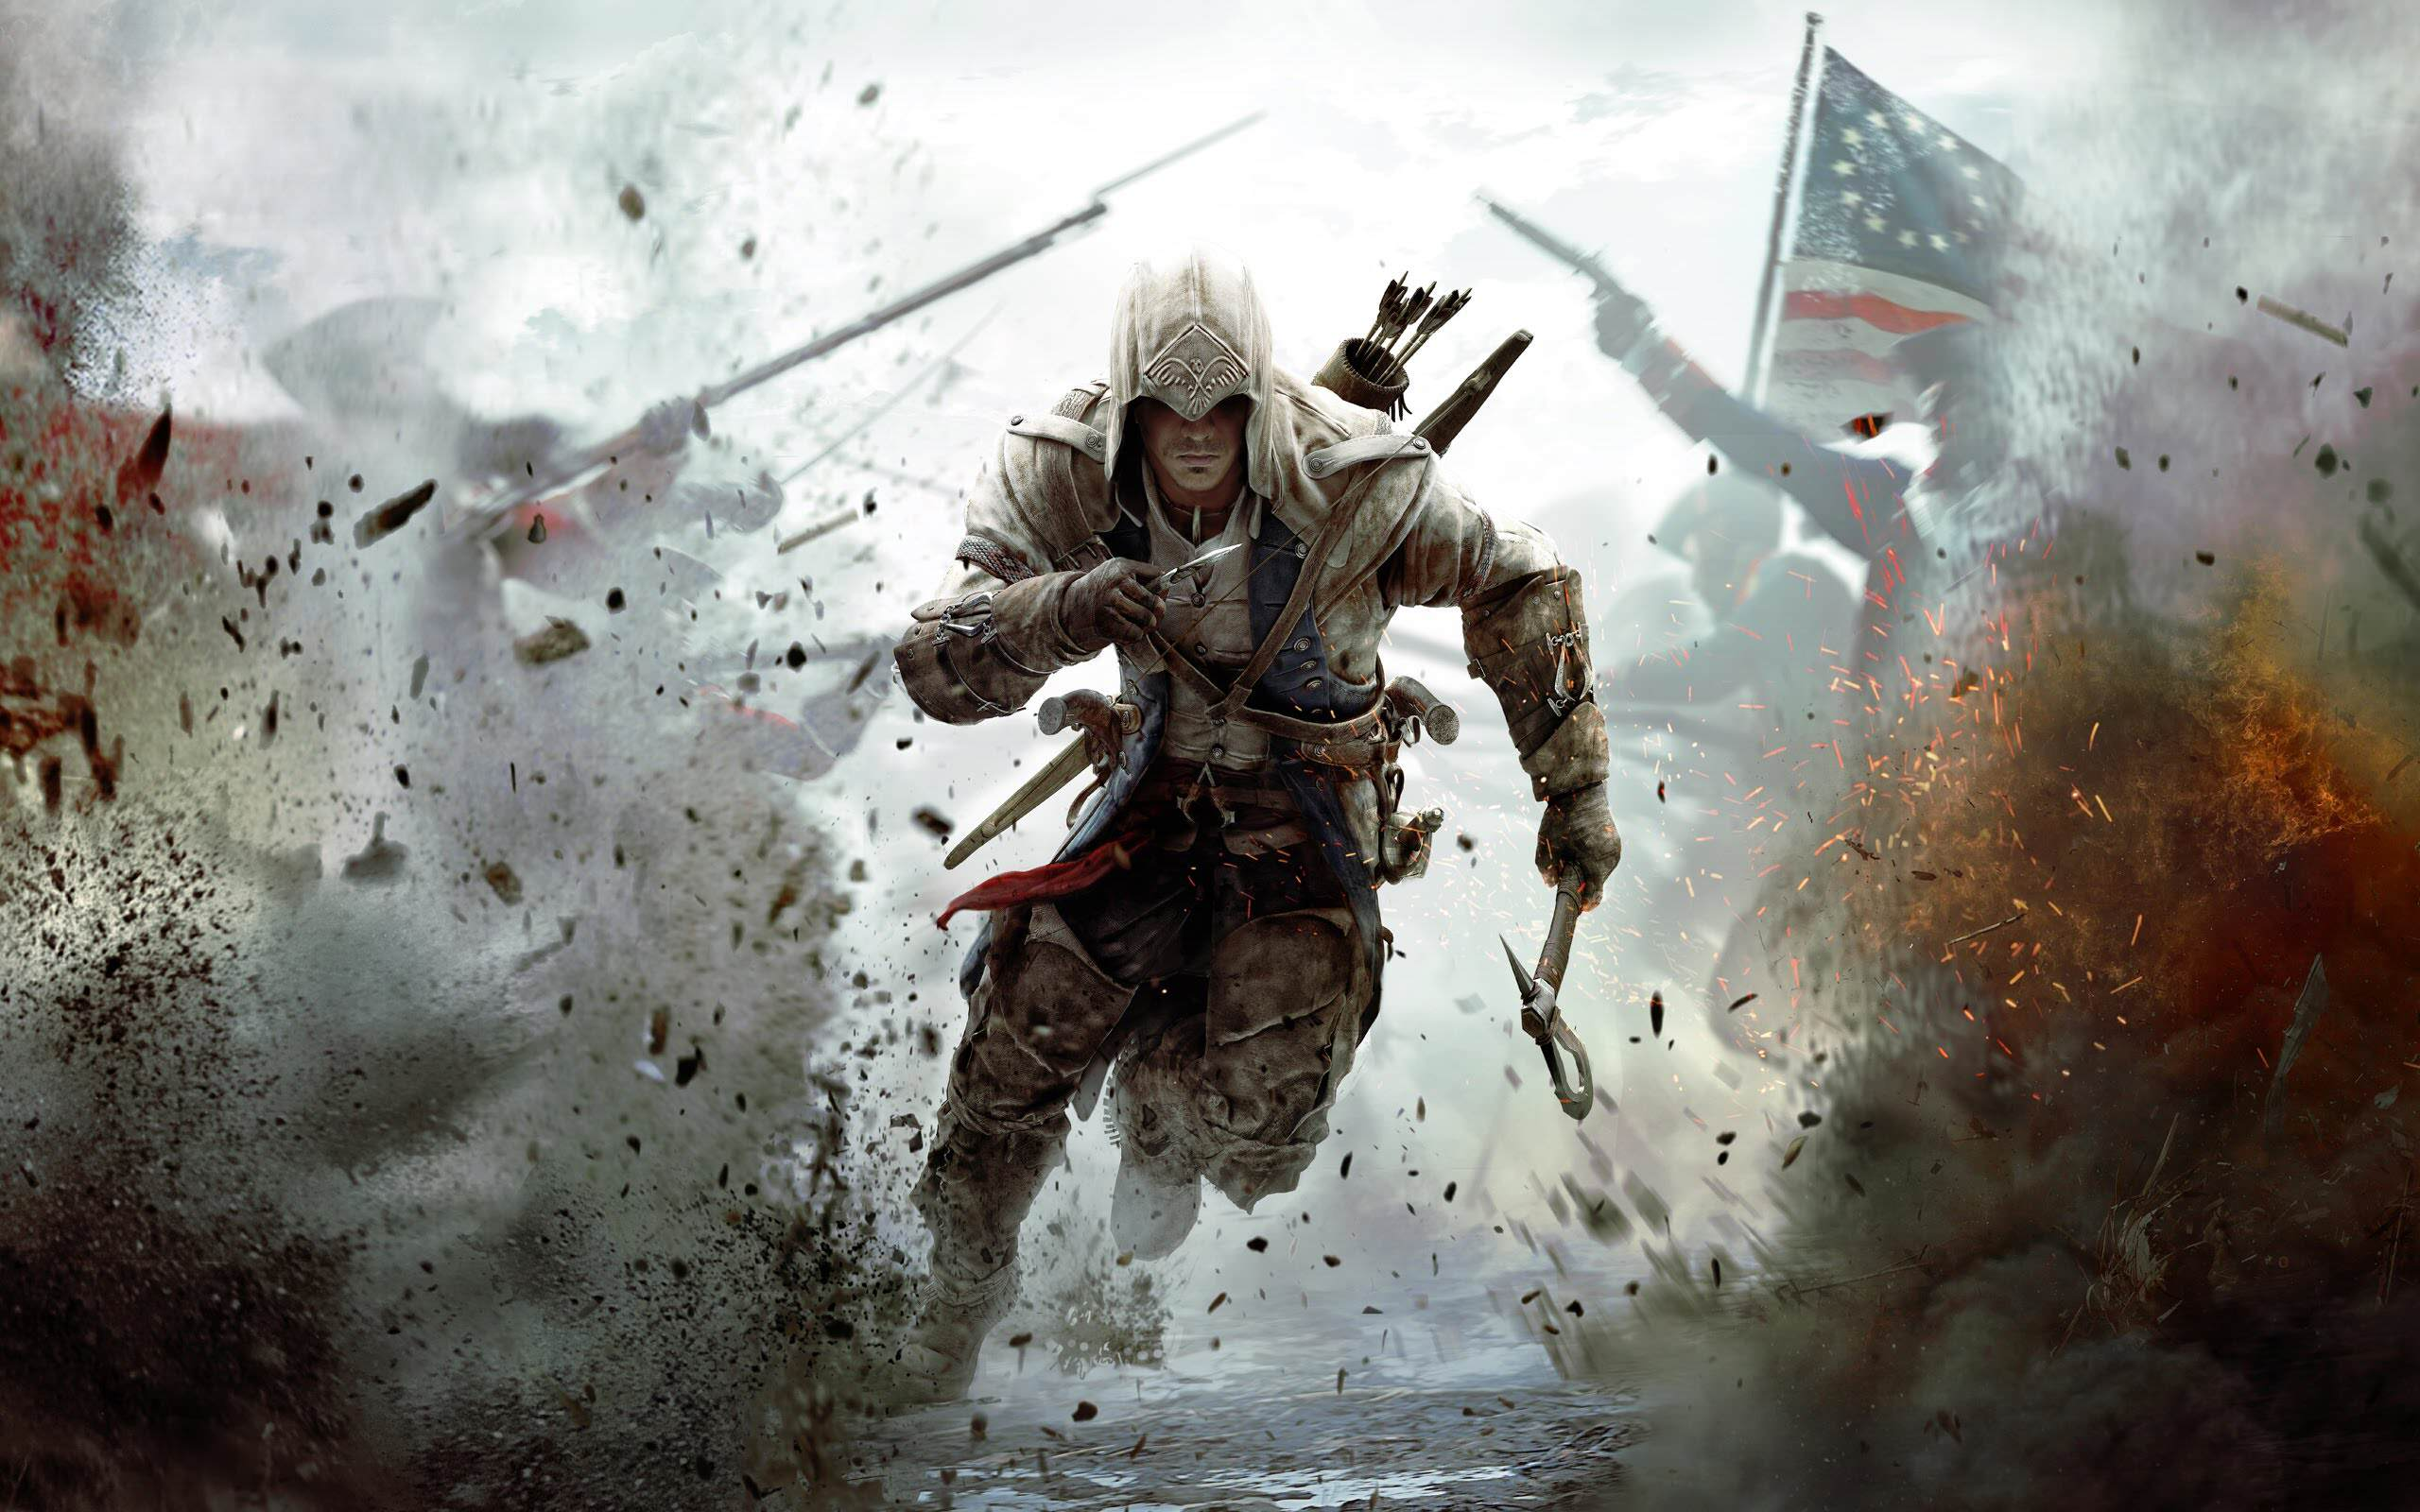 Assassins Creed 3 Studio Developing Massive New Ubisoft Project maxresdefault 1 11